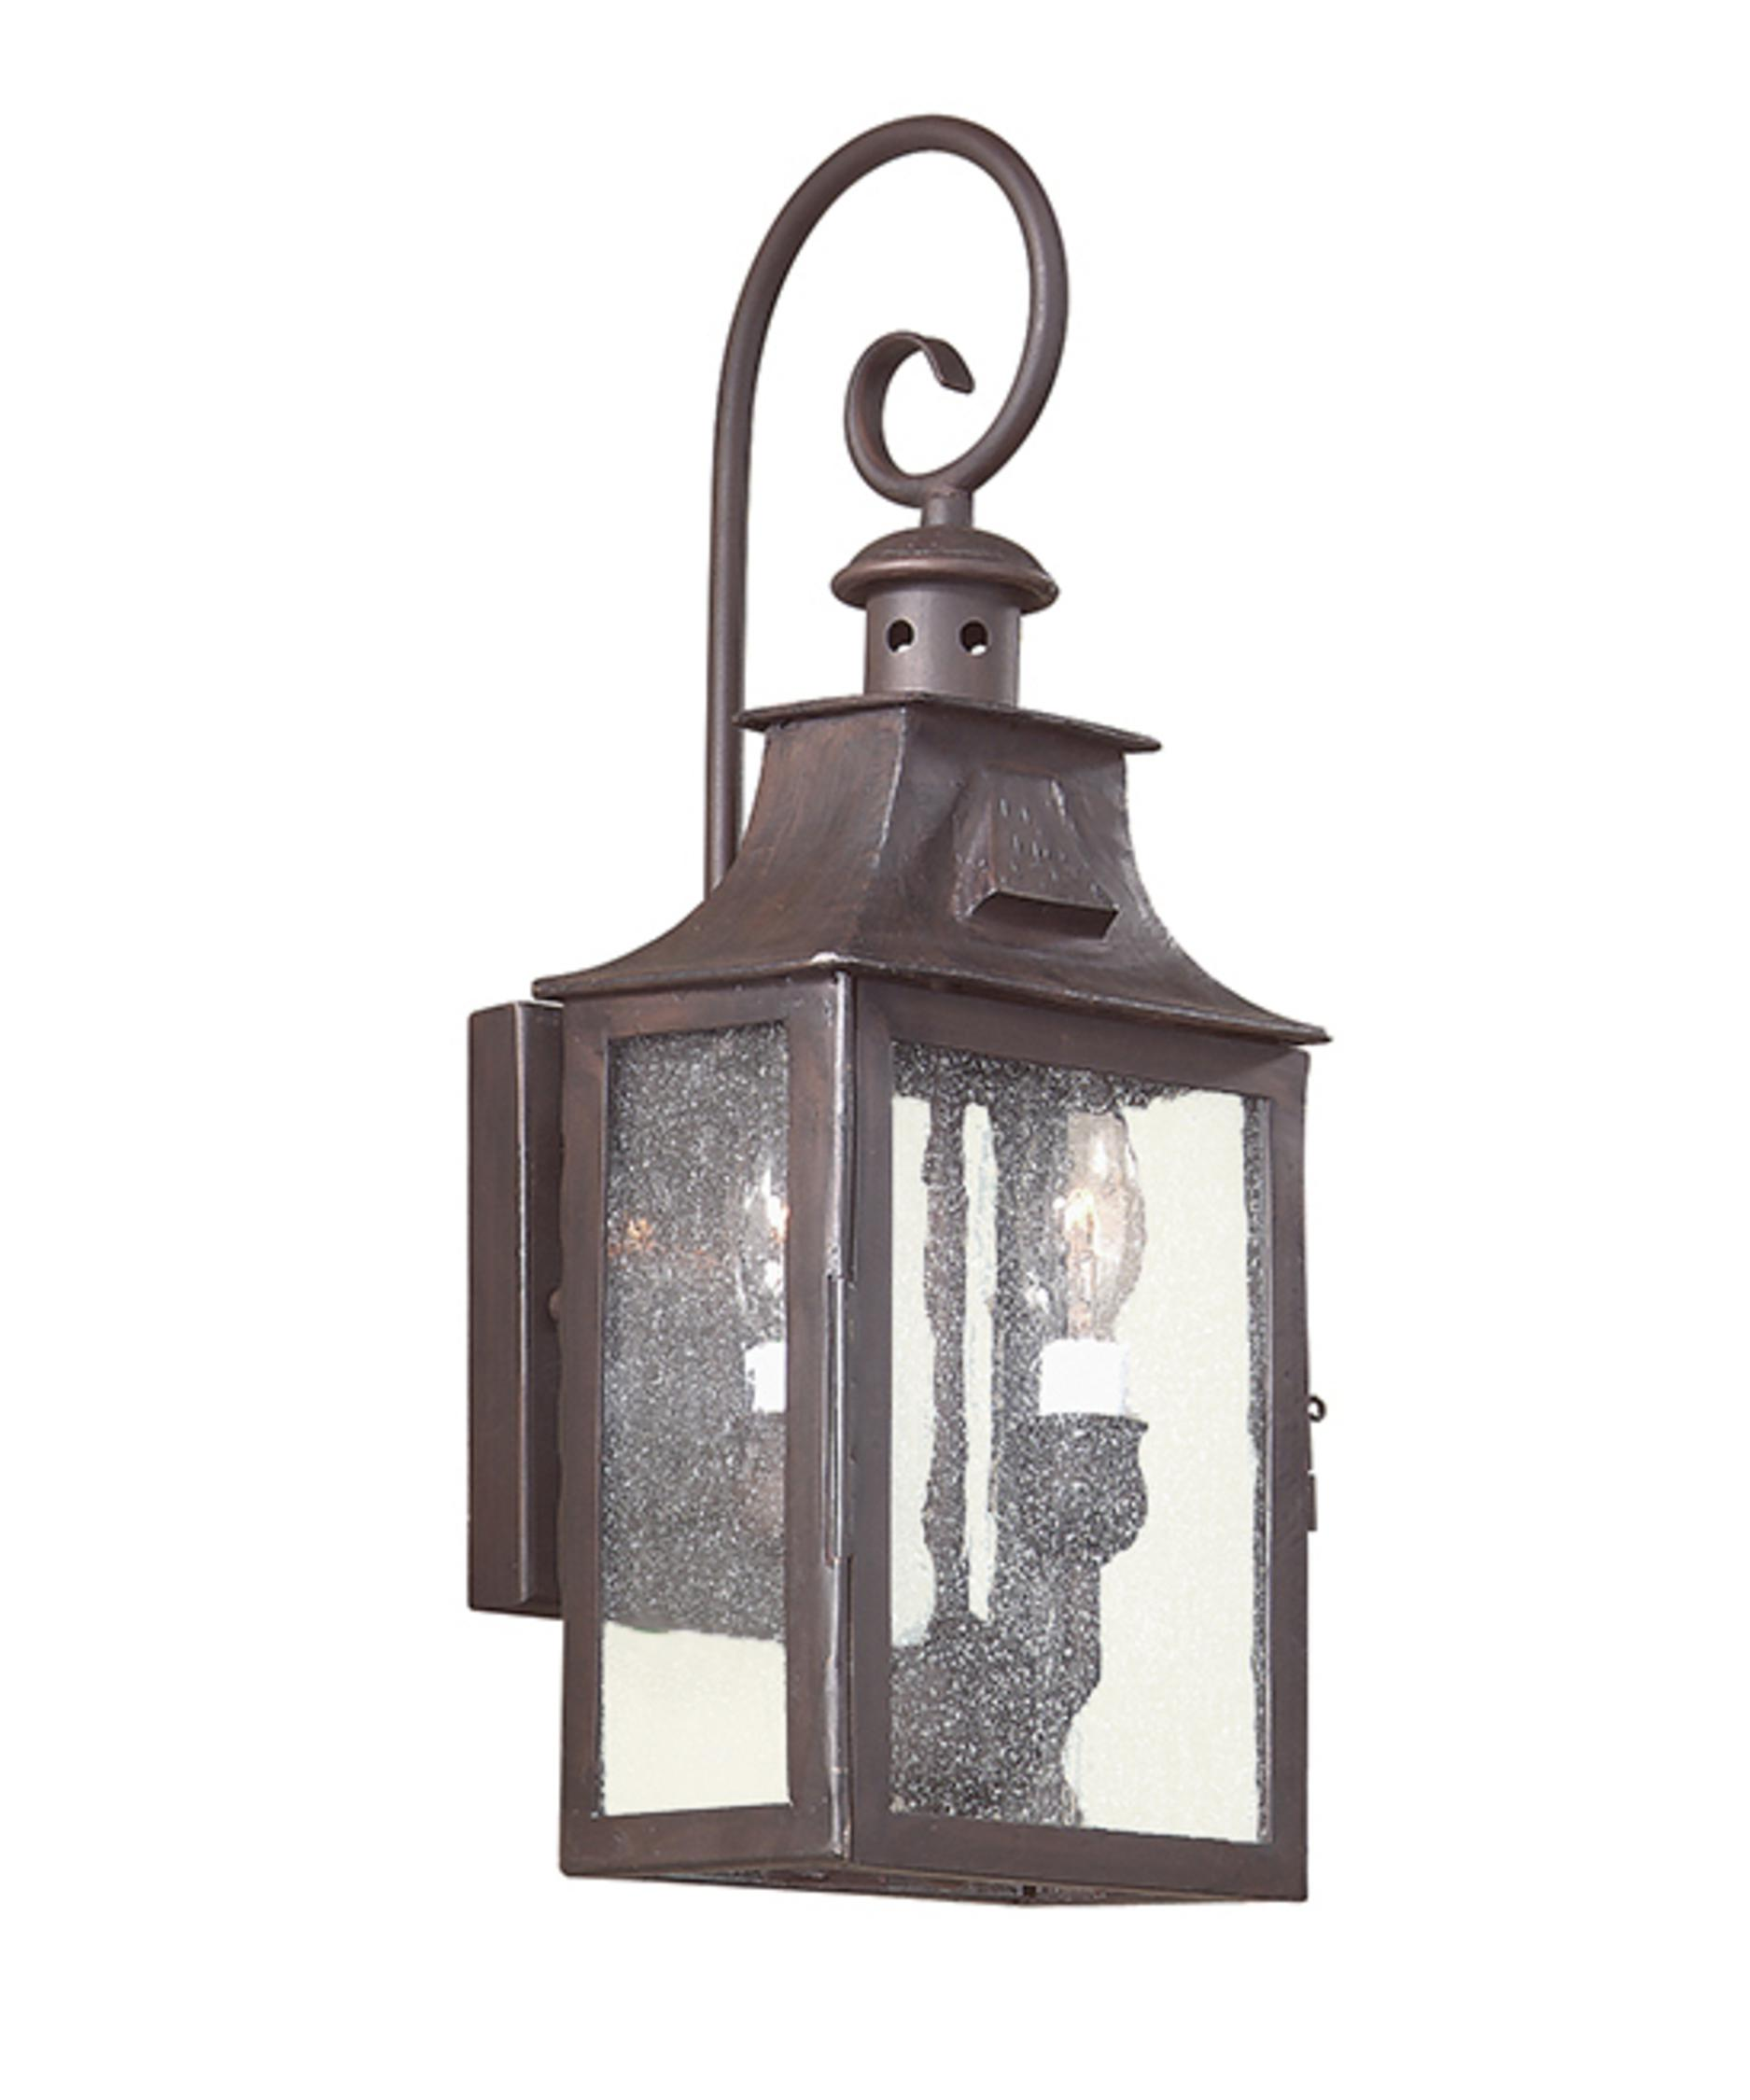 Outdoor Wall Lantern Lights - Adding a Dramatic and Elegant ...